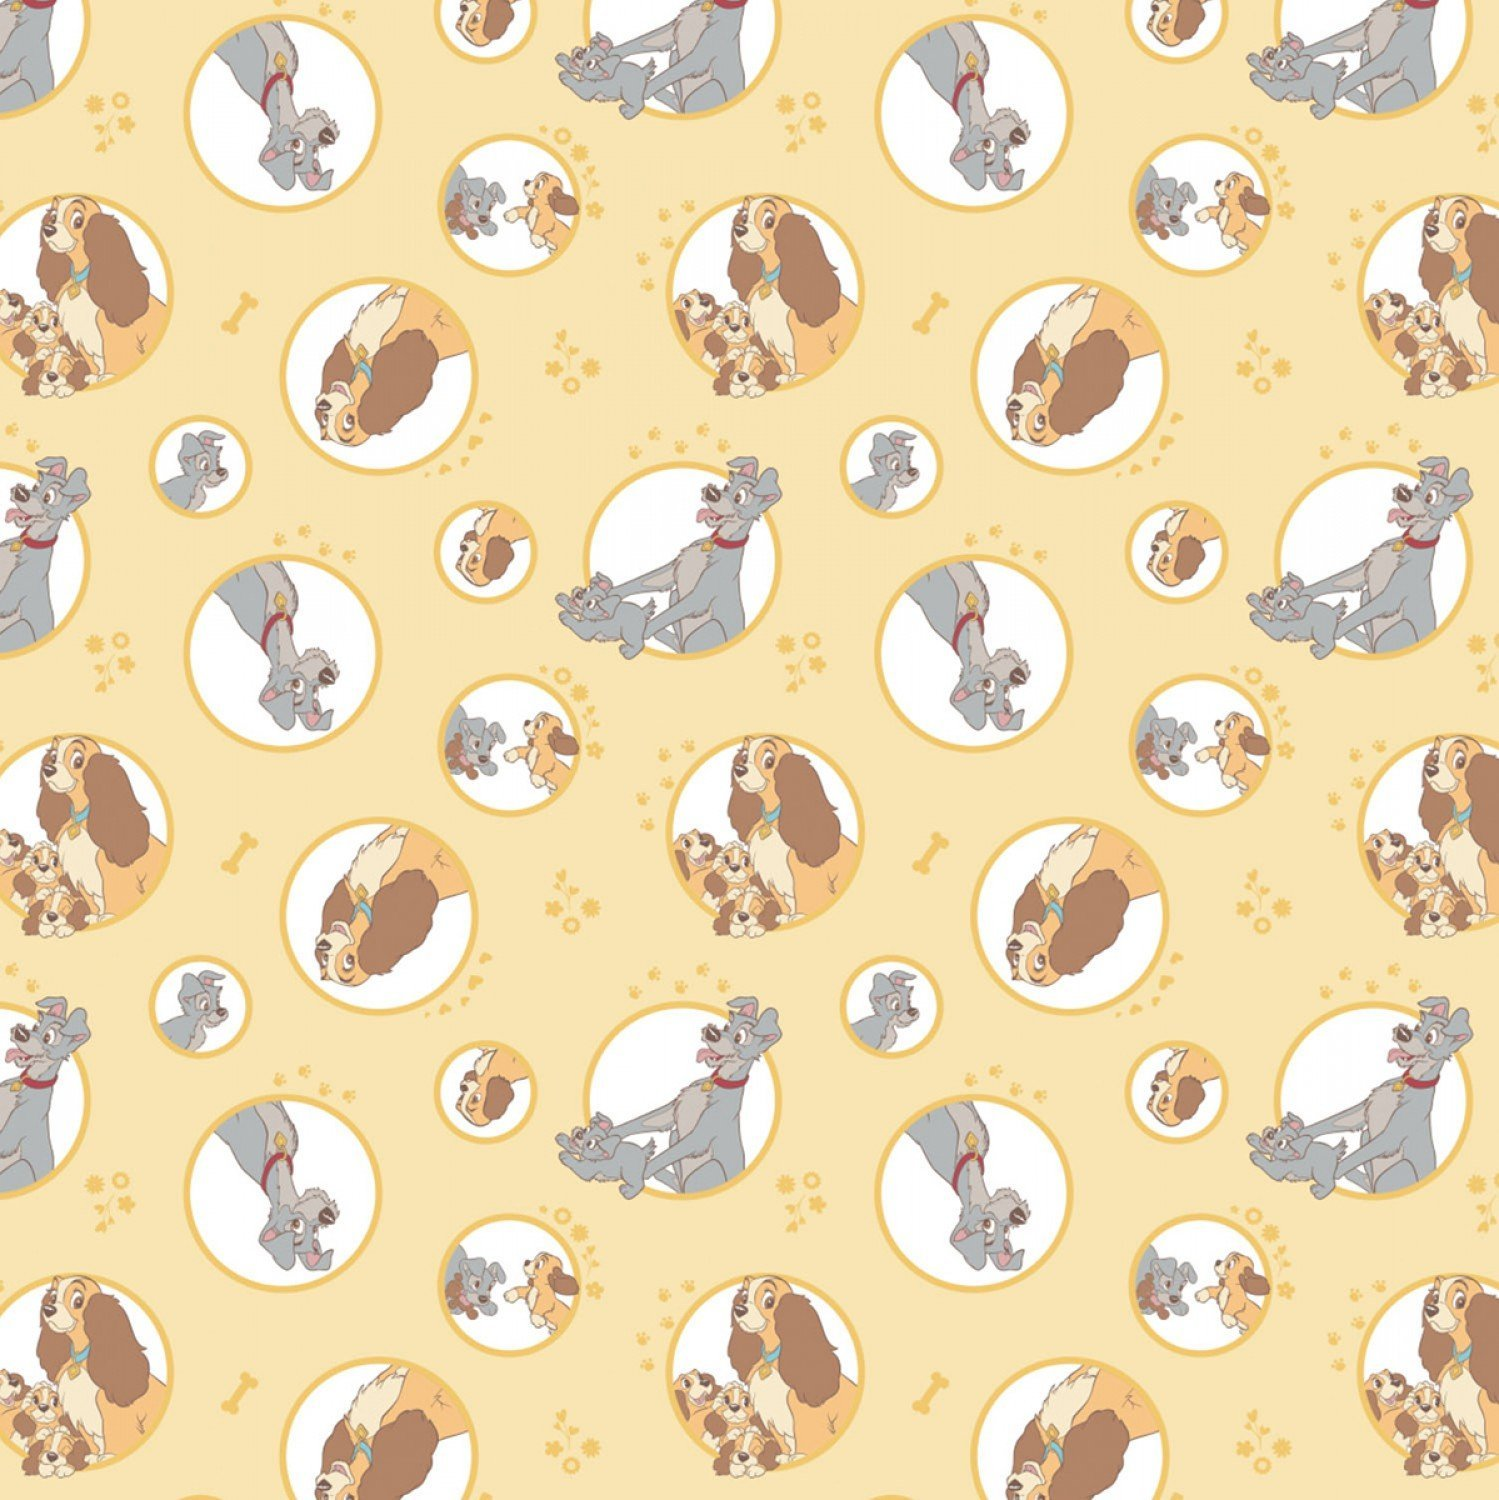 END OF BOLT Lady & The Tramp 85230103 Yellow - .71 YD